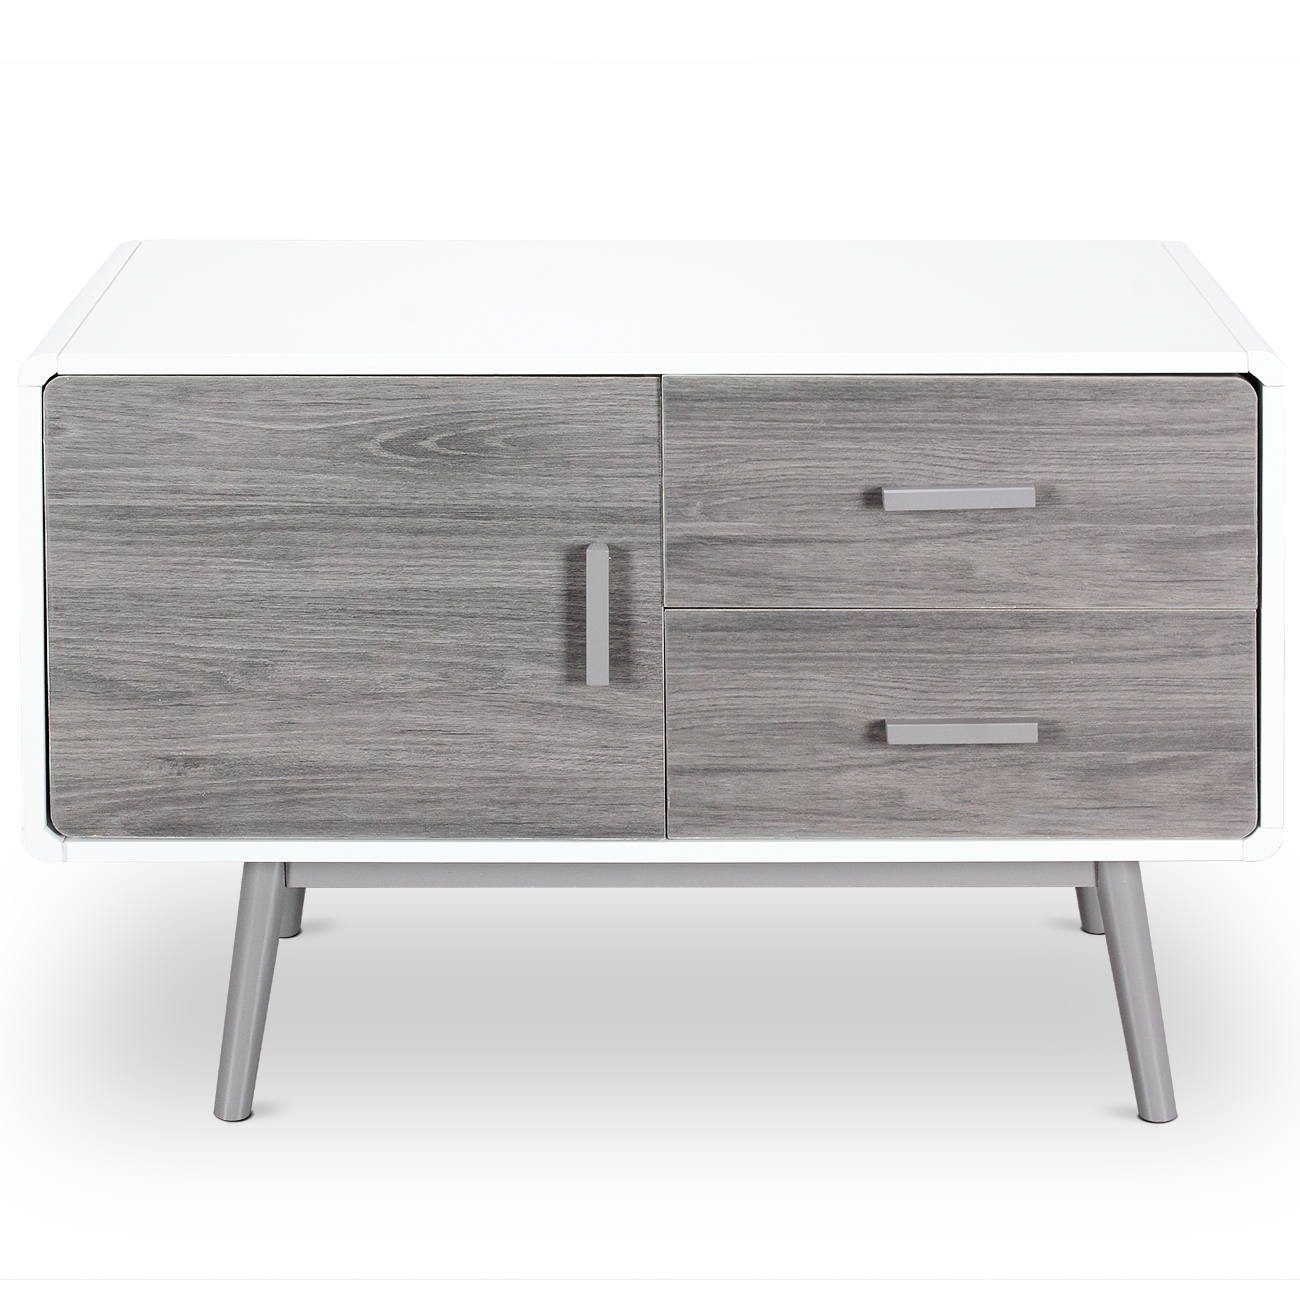 Details About Mid Century Modern Buffet Sideboard Stand With 2 Drawers 1 Cabinet In White